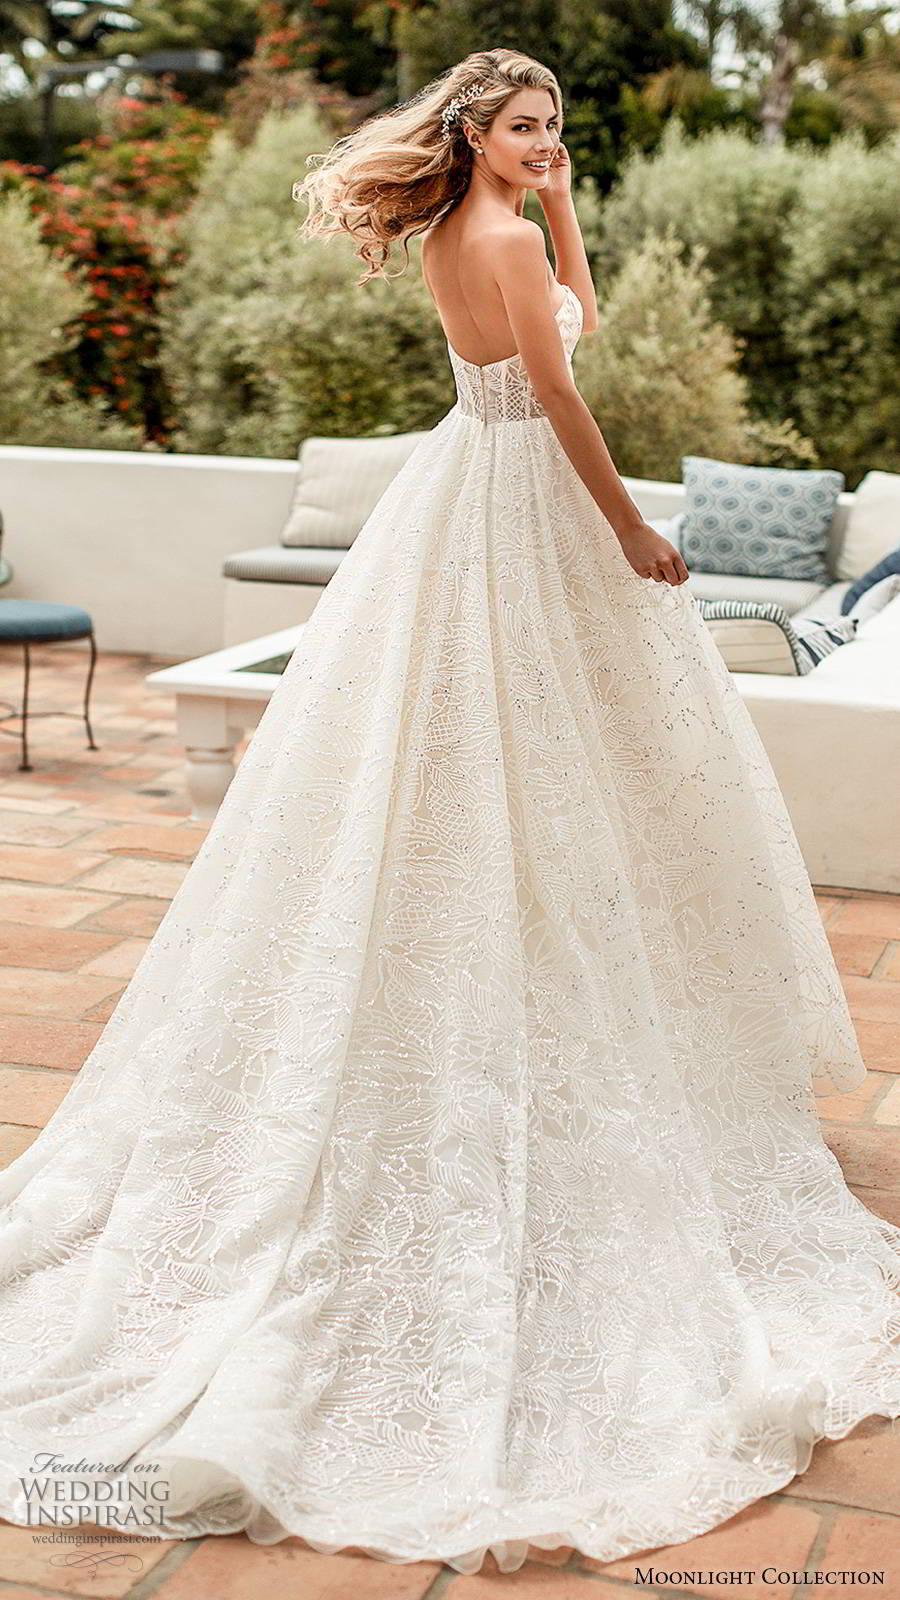 moonlight collection spring 2020 bridal straplesss sweetheart neckline sheer bodice fully embellished glitzy romantic a line ball gown wedding dress chapel train (9) bv